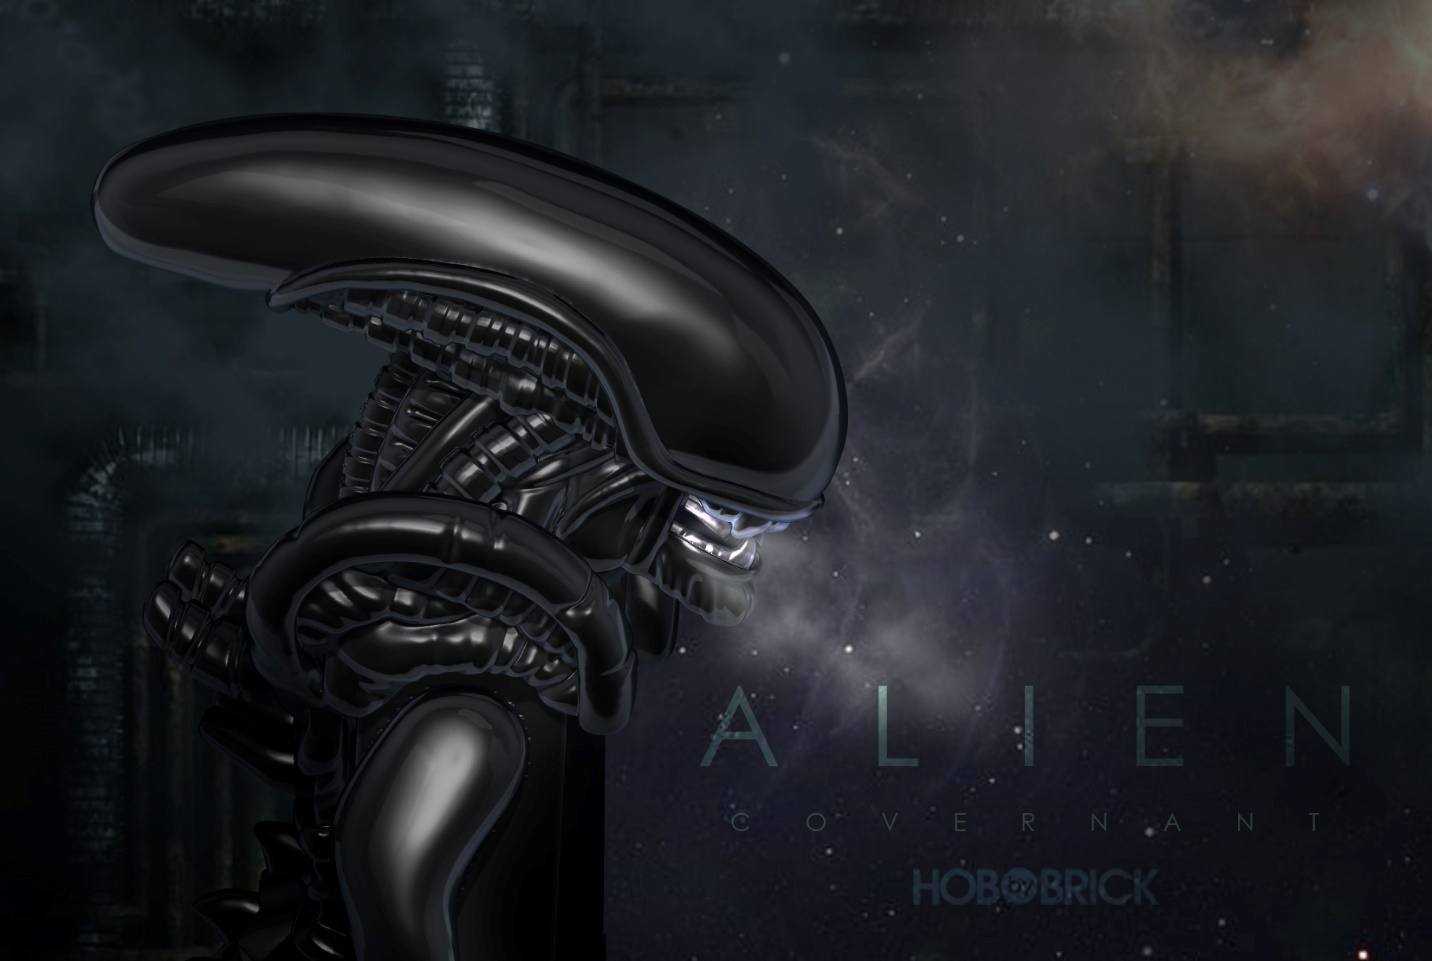 xenomorph from the movie Alien